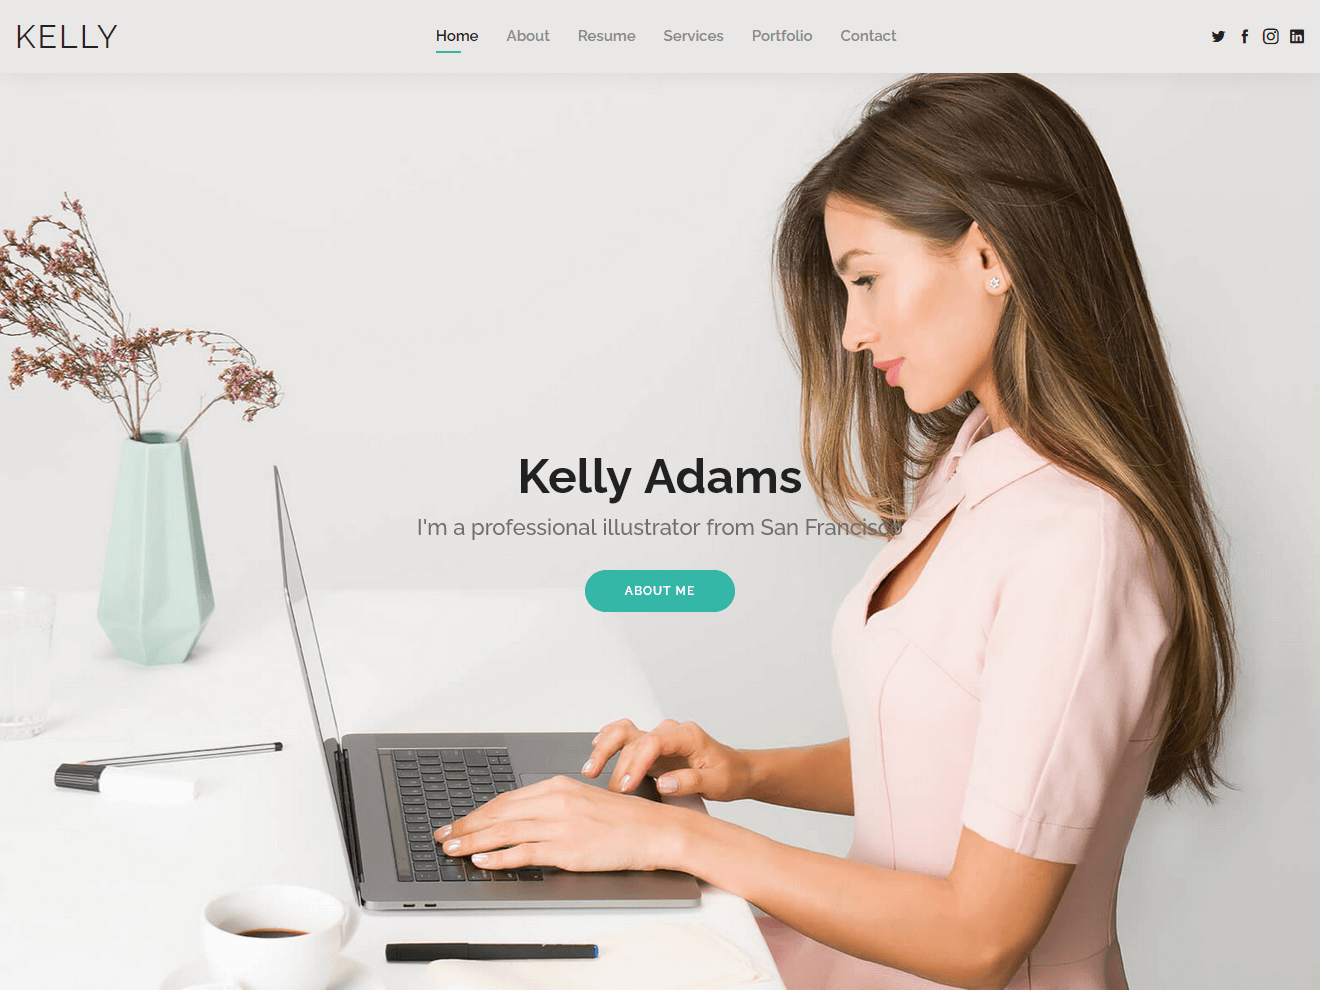 Permanent Link to Kelly – Free Bootstrap CV Resume HTML Template